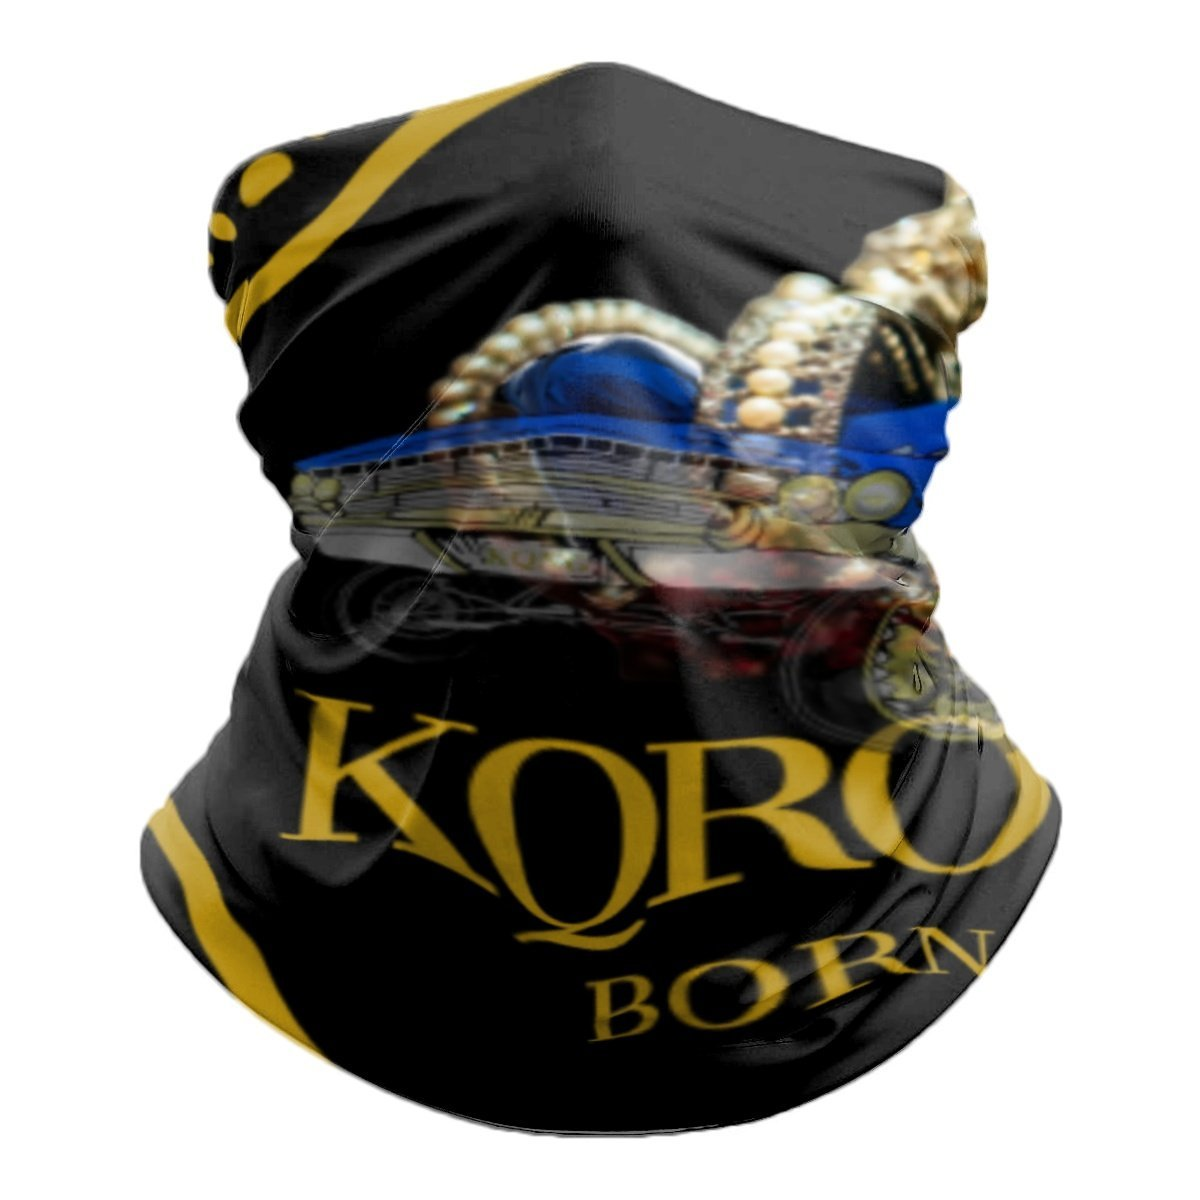 KQROWN'D APPAREL - LOWRIDER QUEEN Edition - Tube Scarf - KQROWN'D APPAREL